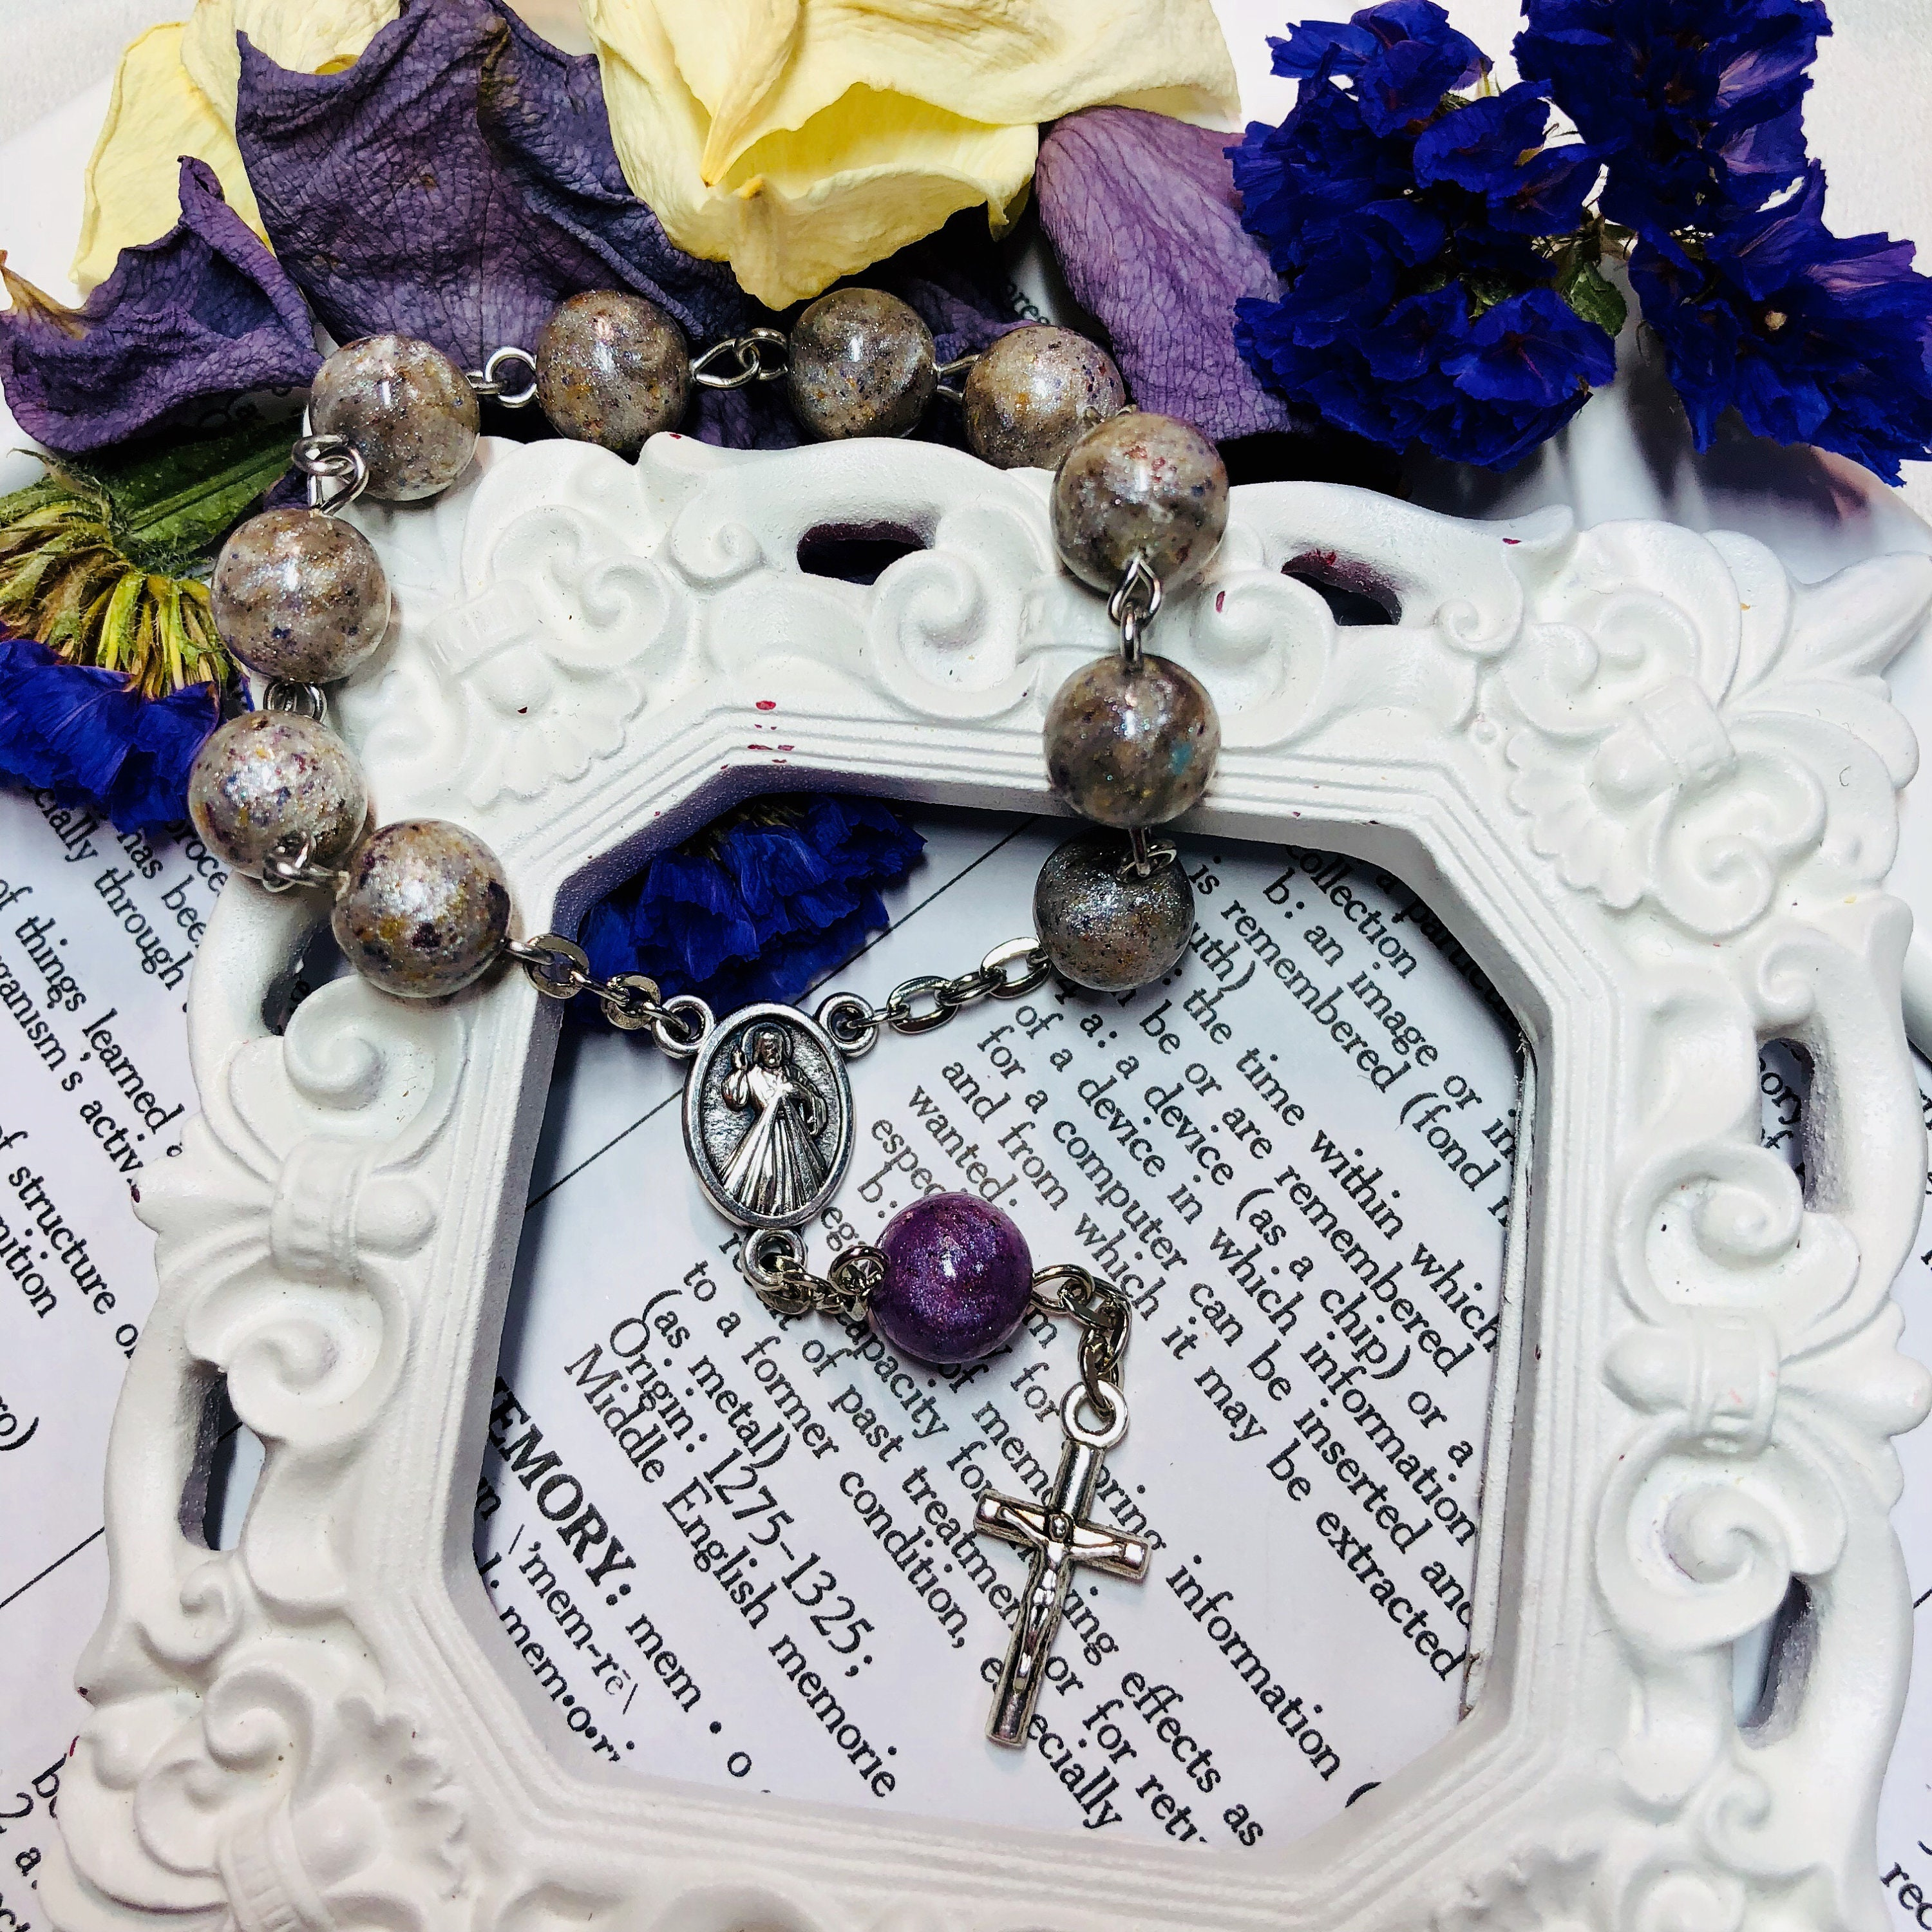 Rosary beads made from funeral flowers image collections flower rosary beads made from funeral flowers image collections flower rosary made from funeral flowers gallery flower izmirmasajfo